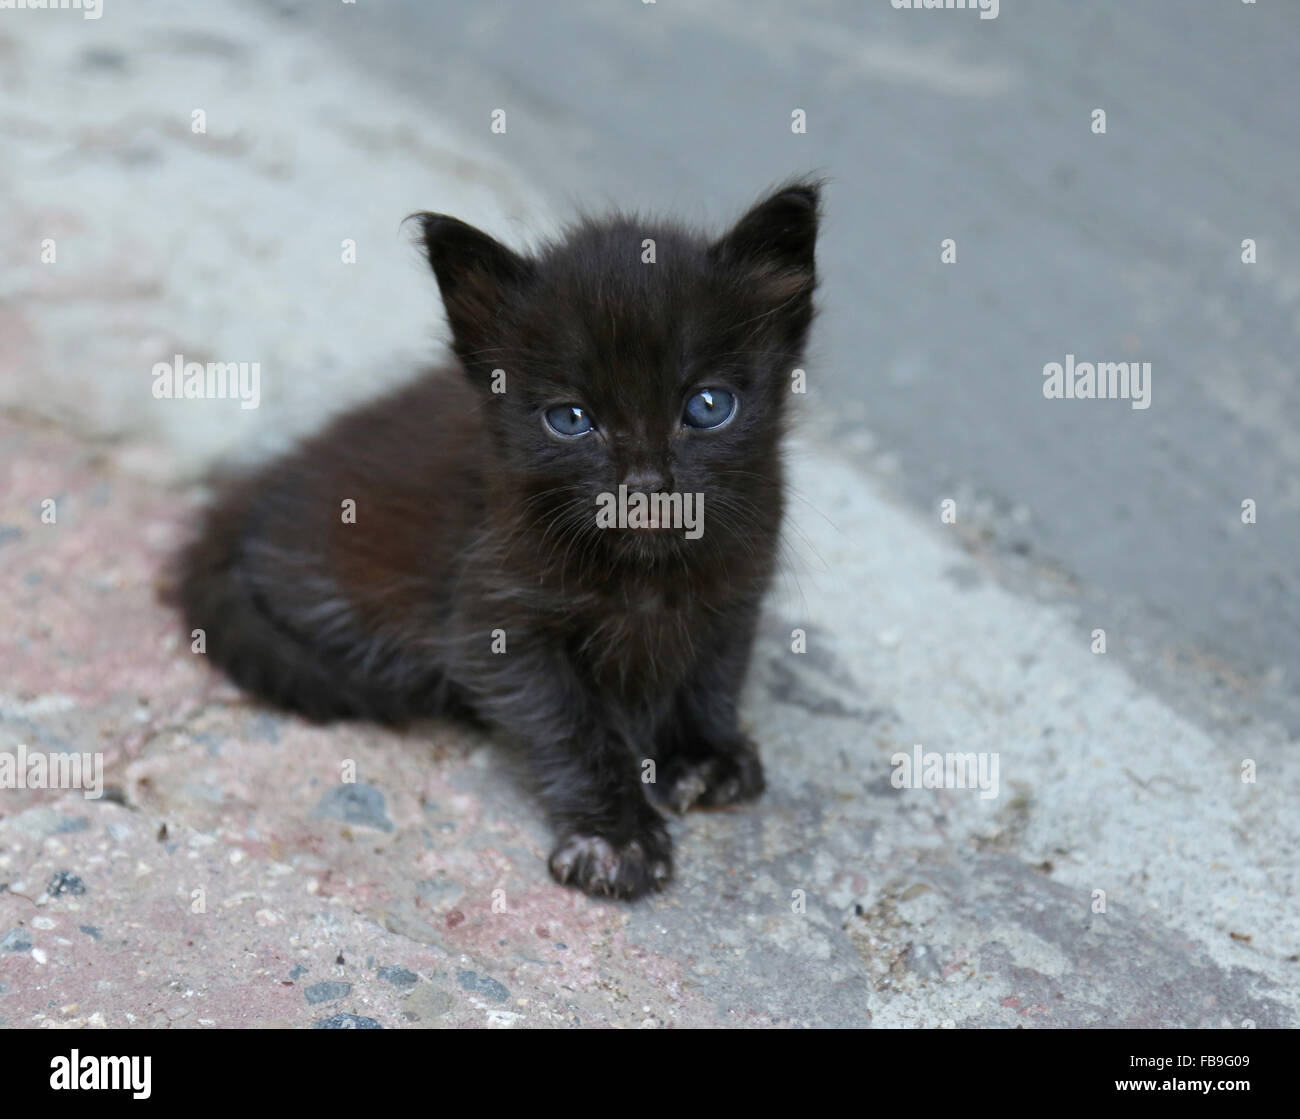 Black Cat With Blue Eyes High Resolution Stock Photography And Images Alamy